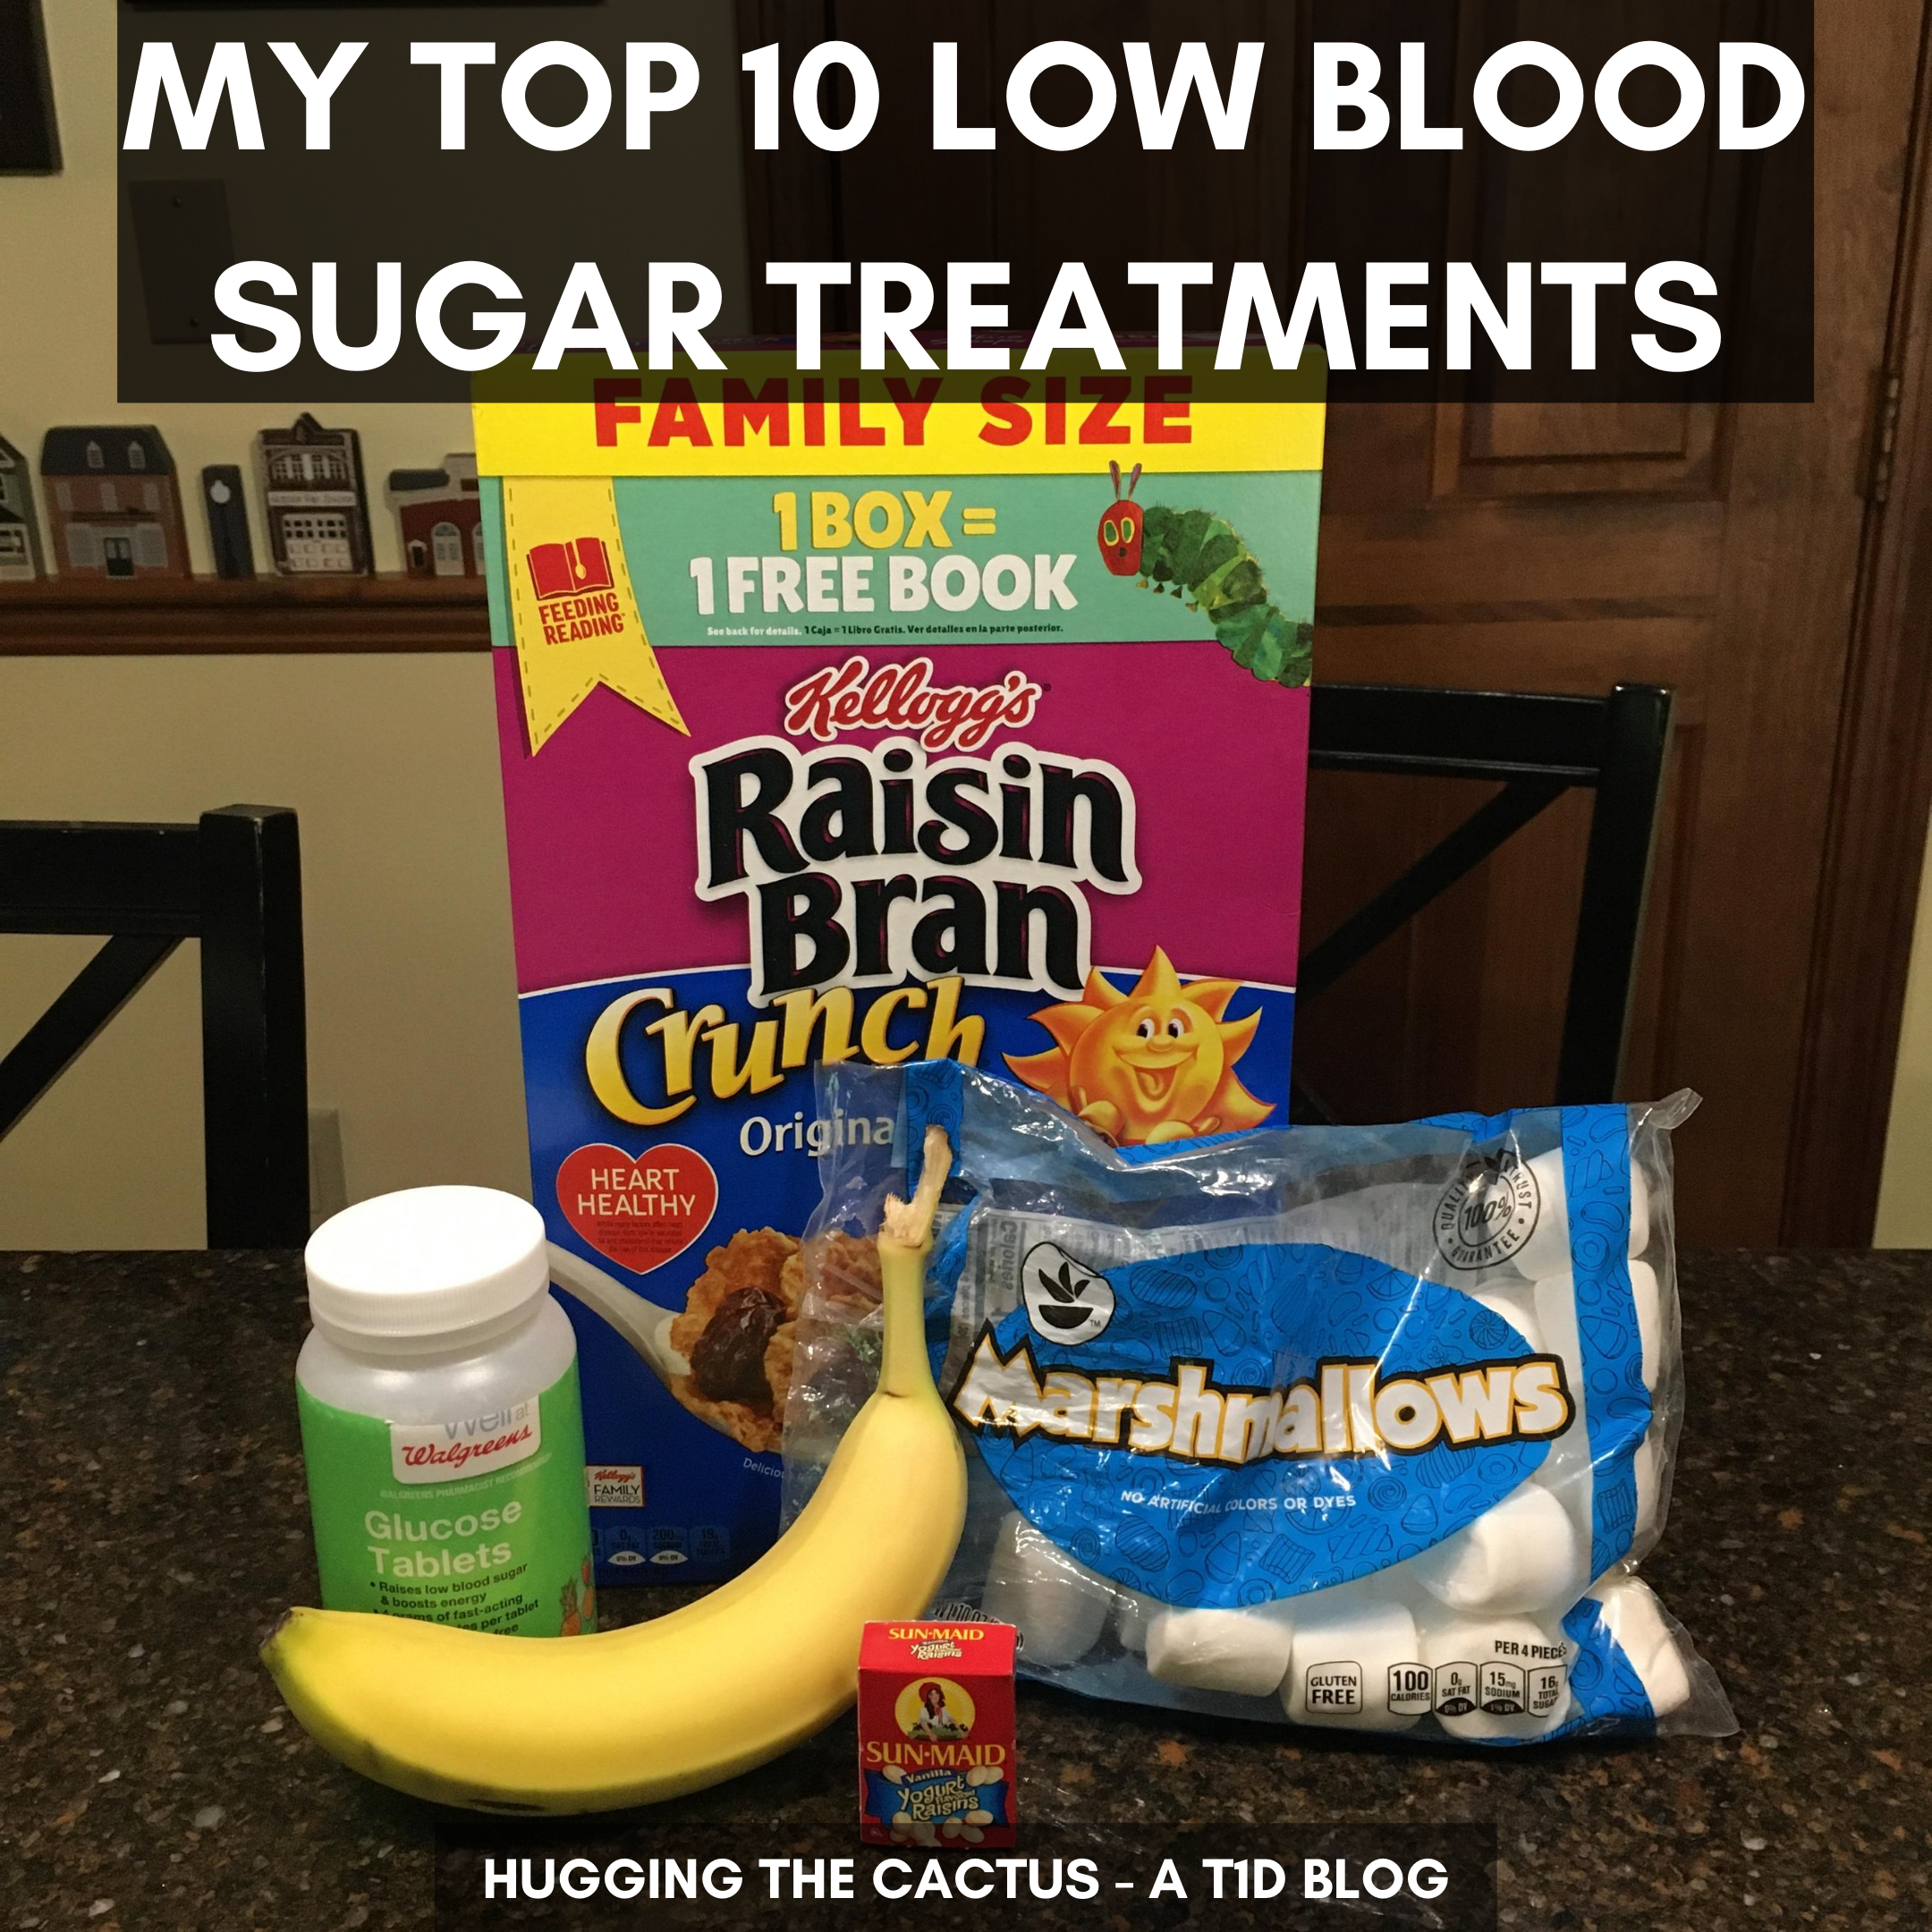 My Top 10 Low Blood Sugar Treatments